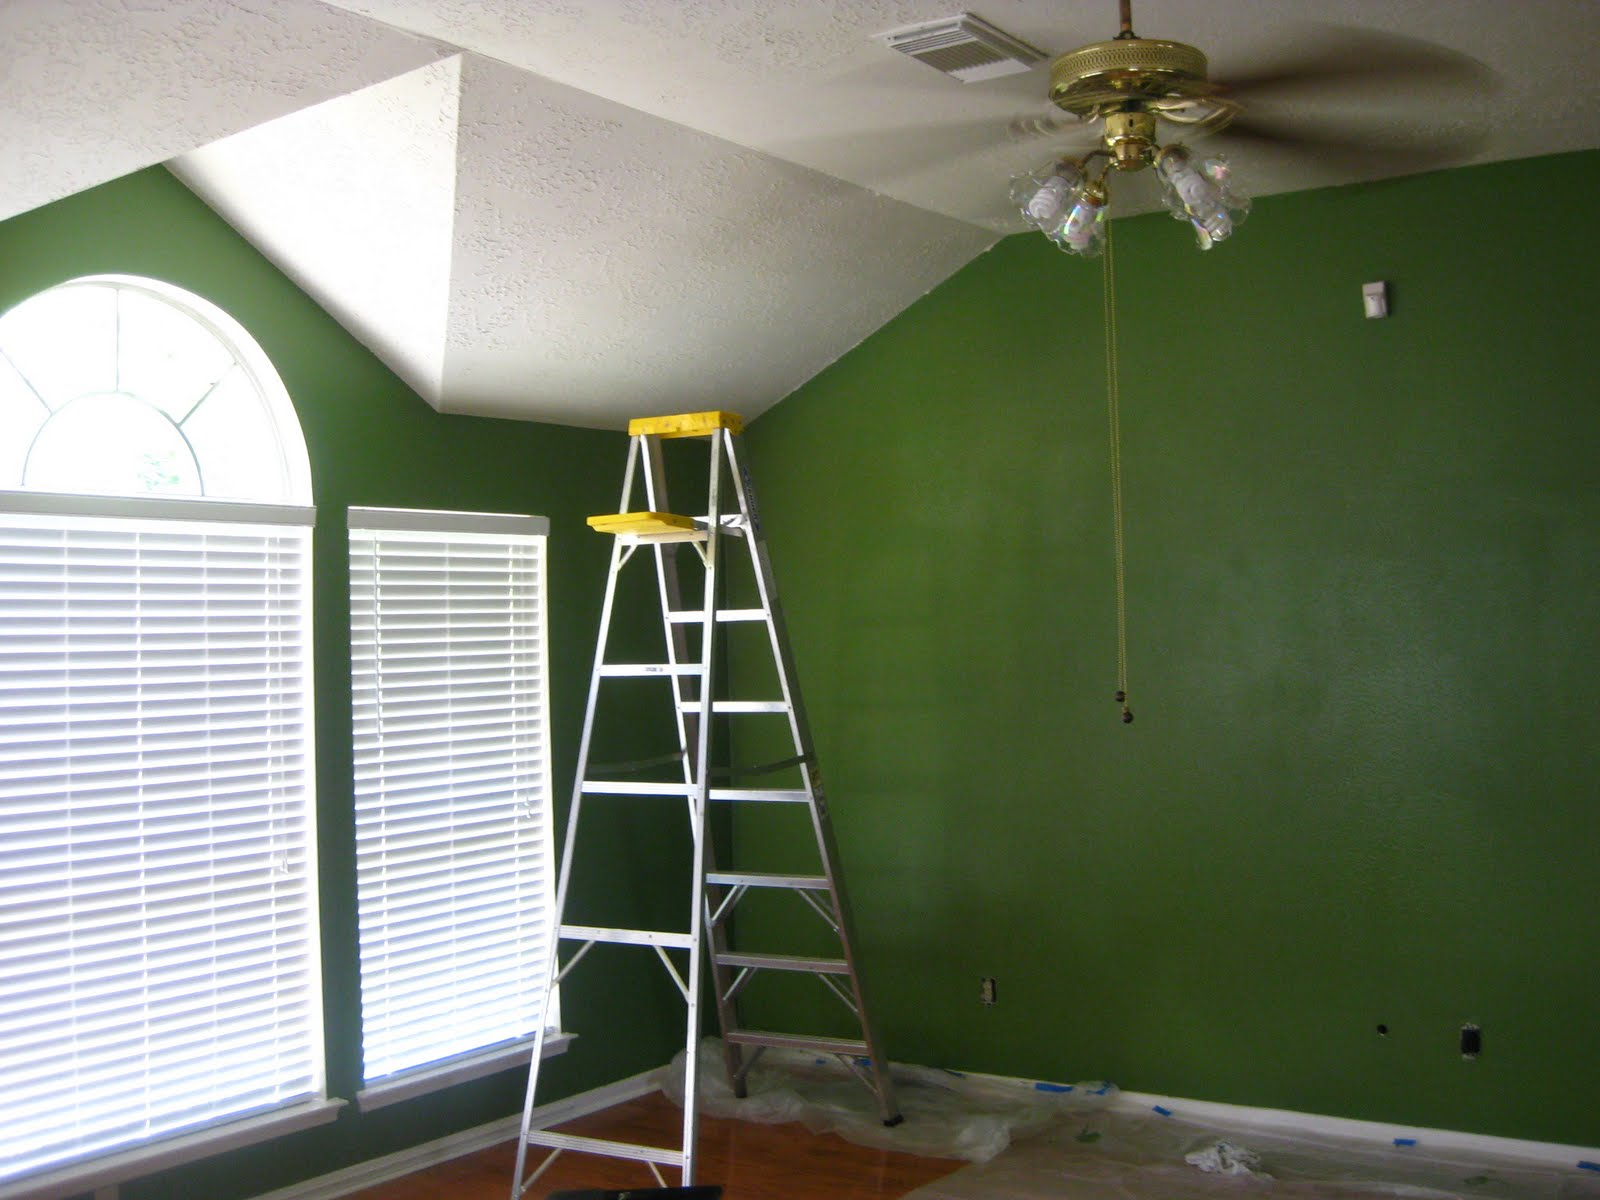 Valspar Exterior Paint And Primer In One Reviews Buy Valspar Latex Exterior Primer Emejing